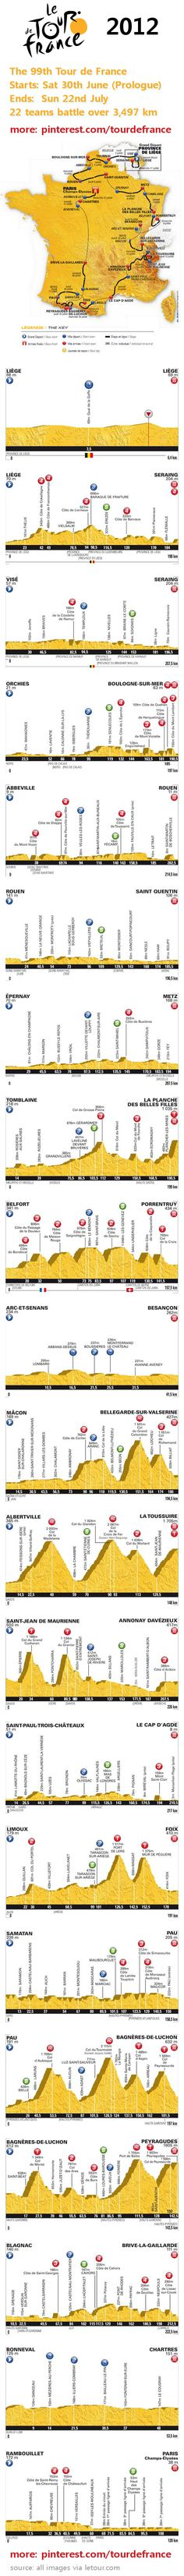 Tour de France 2012 #infographic Map & All Stage Profiles. The most famous #bicycle race in the world! #LeTour #TdF